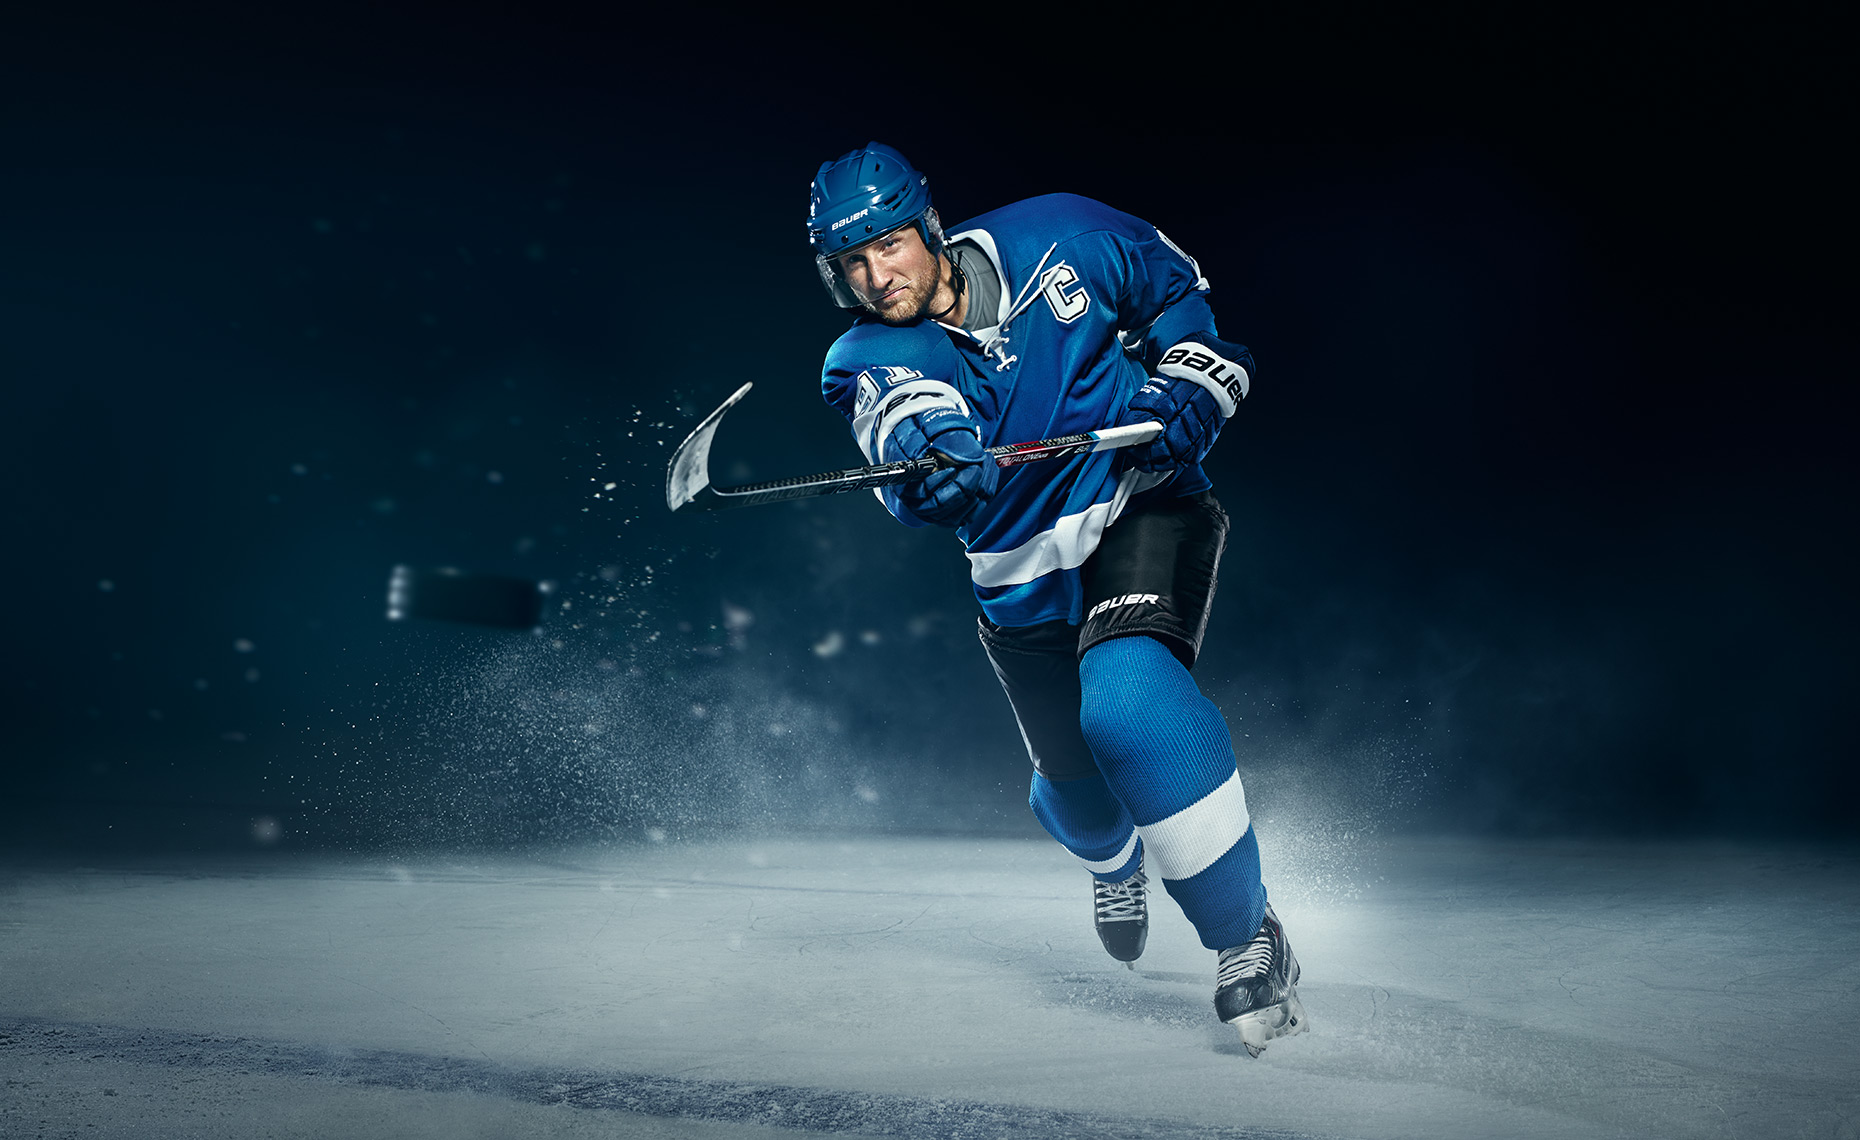 Steven_Stamkos_Powerade_HORIZONTAL